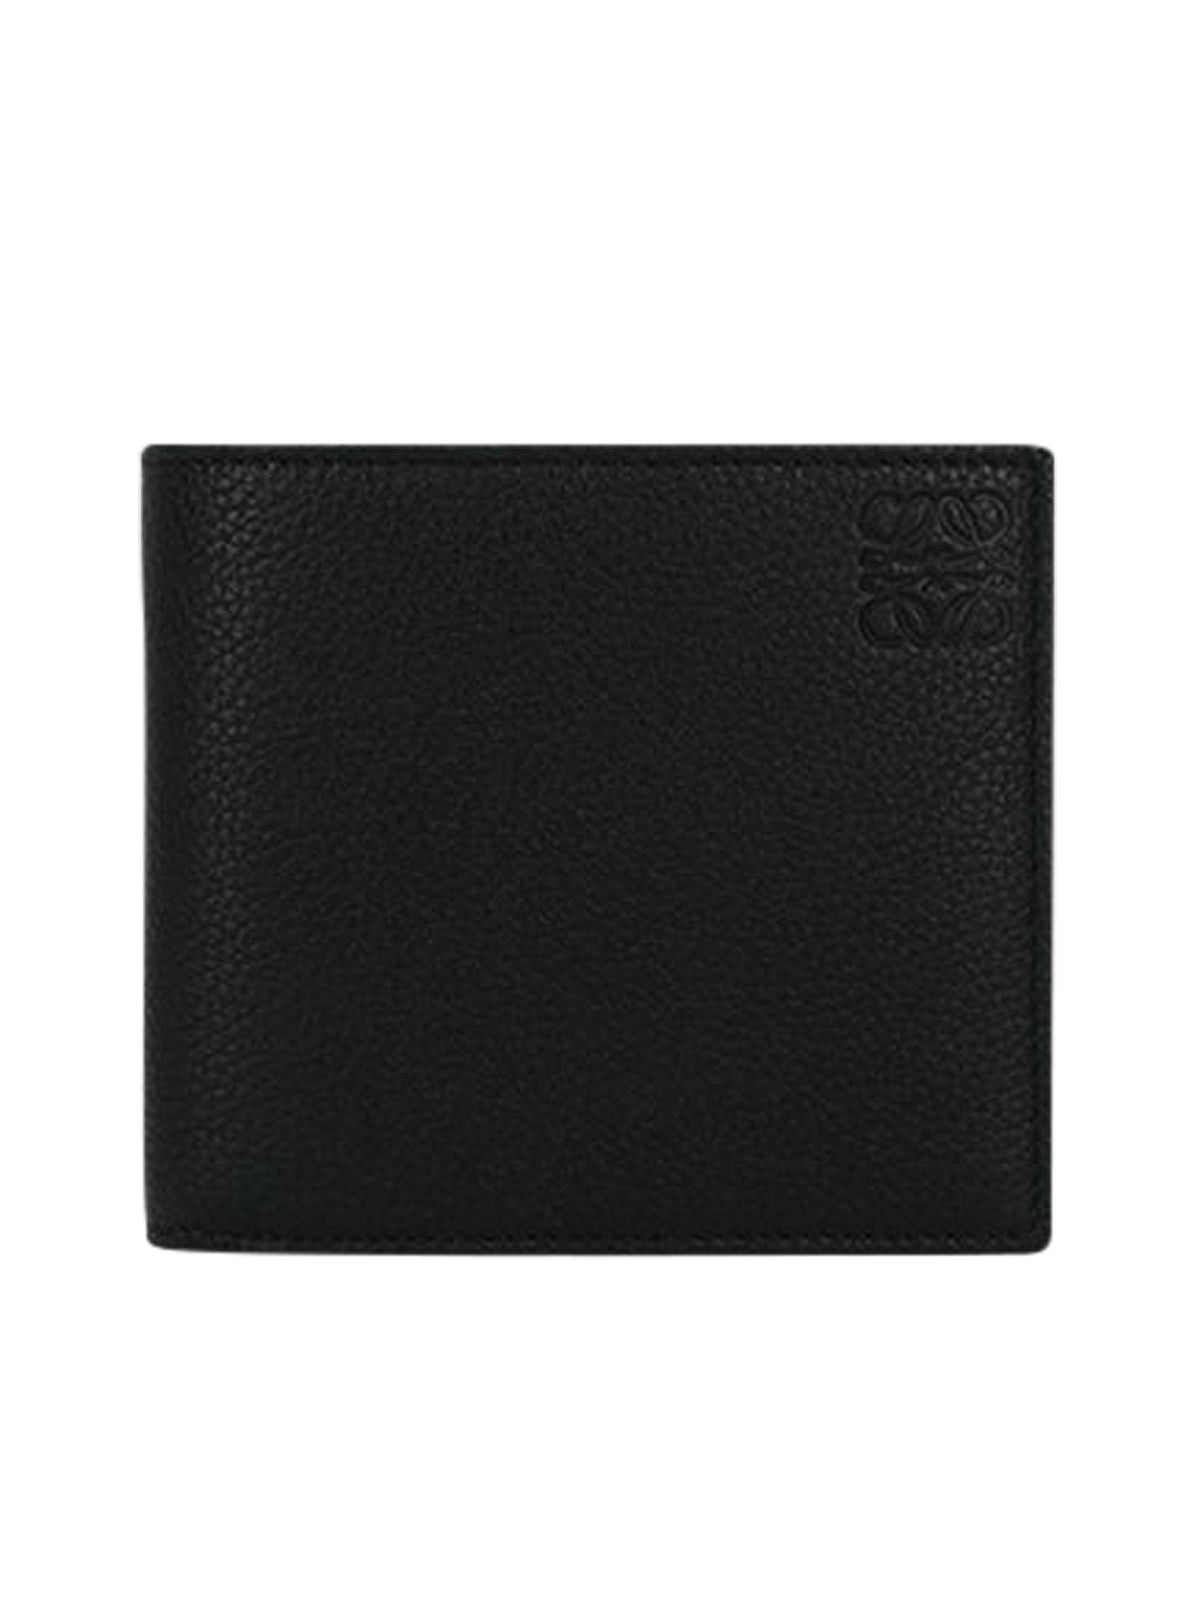 TUMBLED LEATHER BILLFOLD WALLET